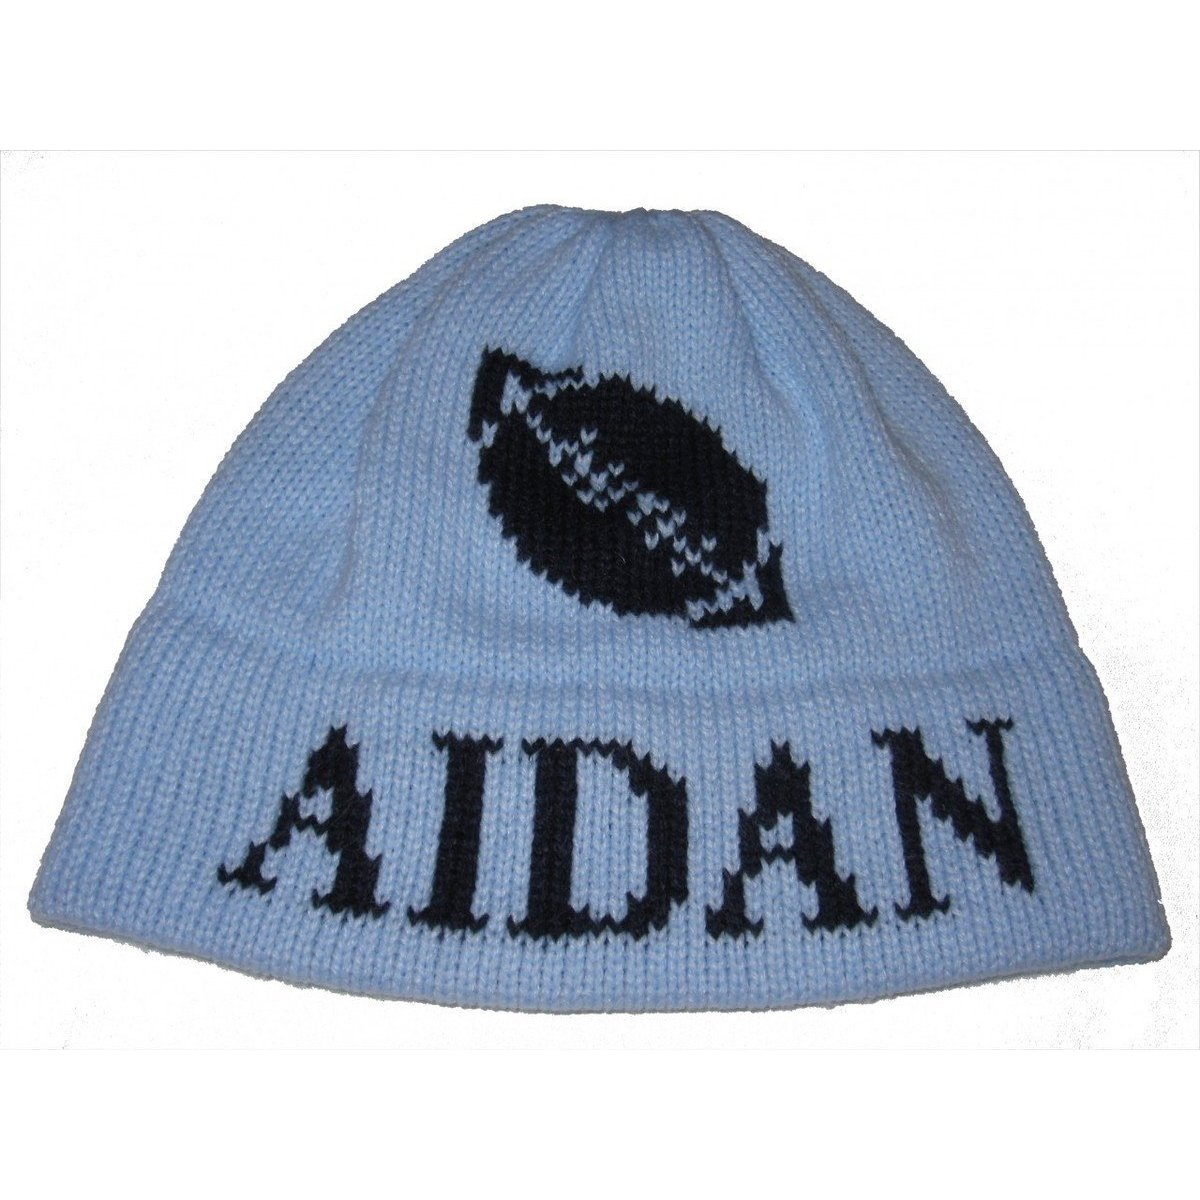 Football Personalized Knit Hat-Hats-Jack and Jill Boutique